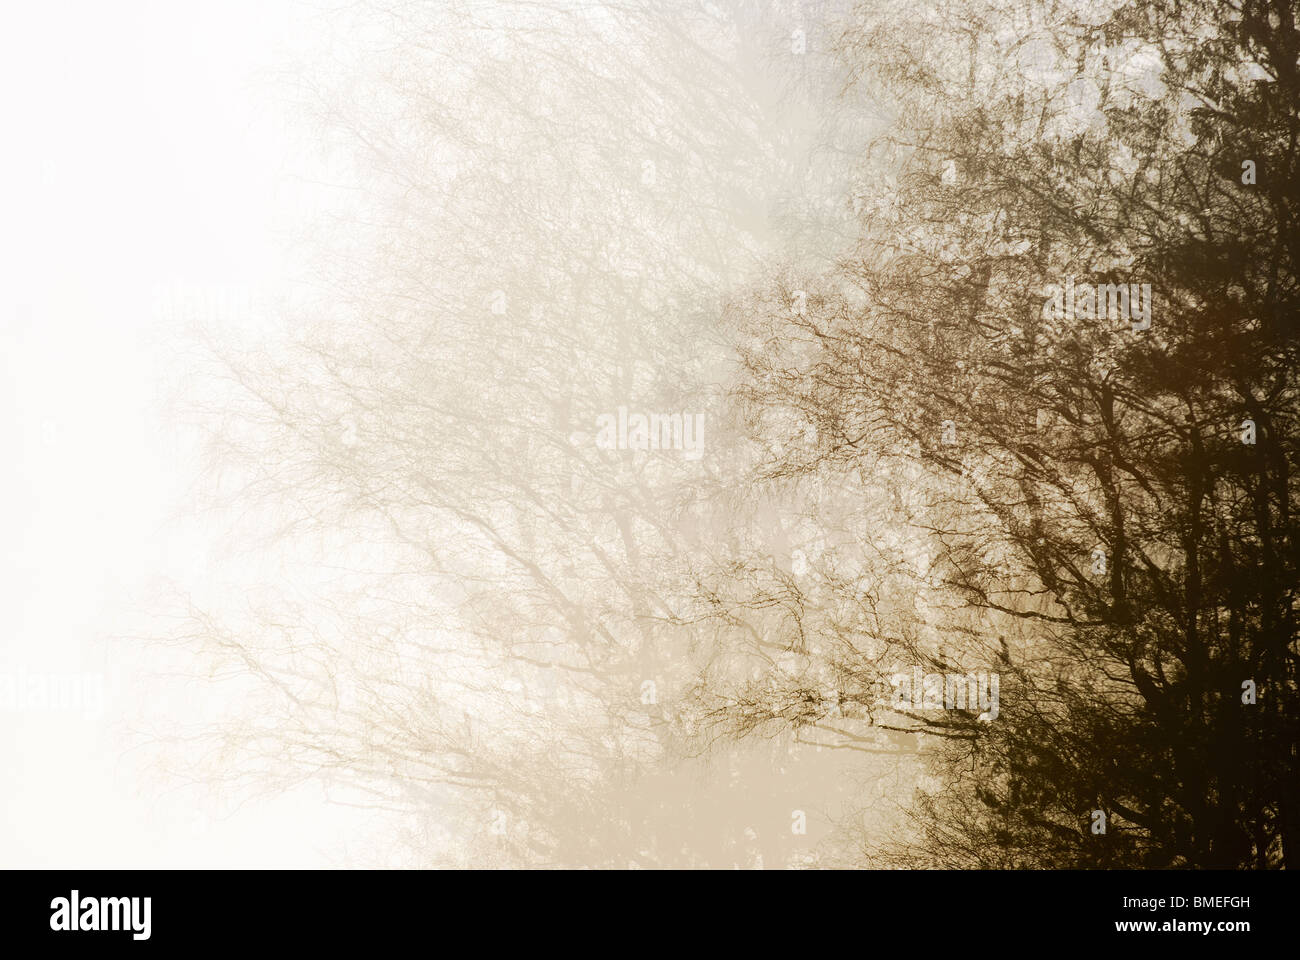 View of tree in fog - Stock Image